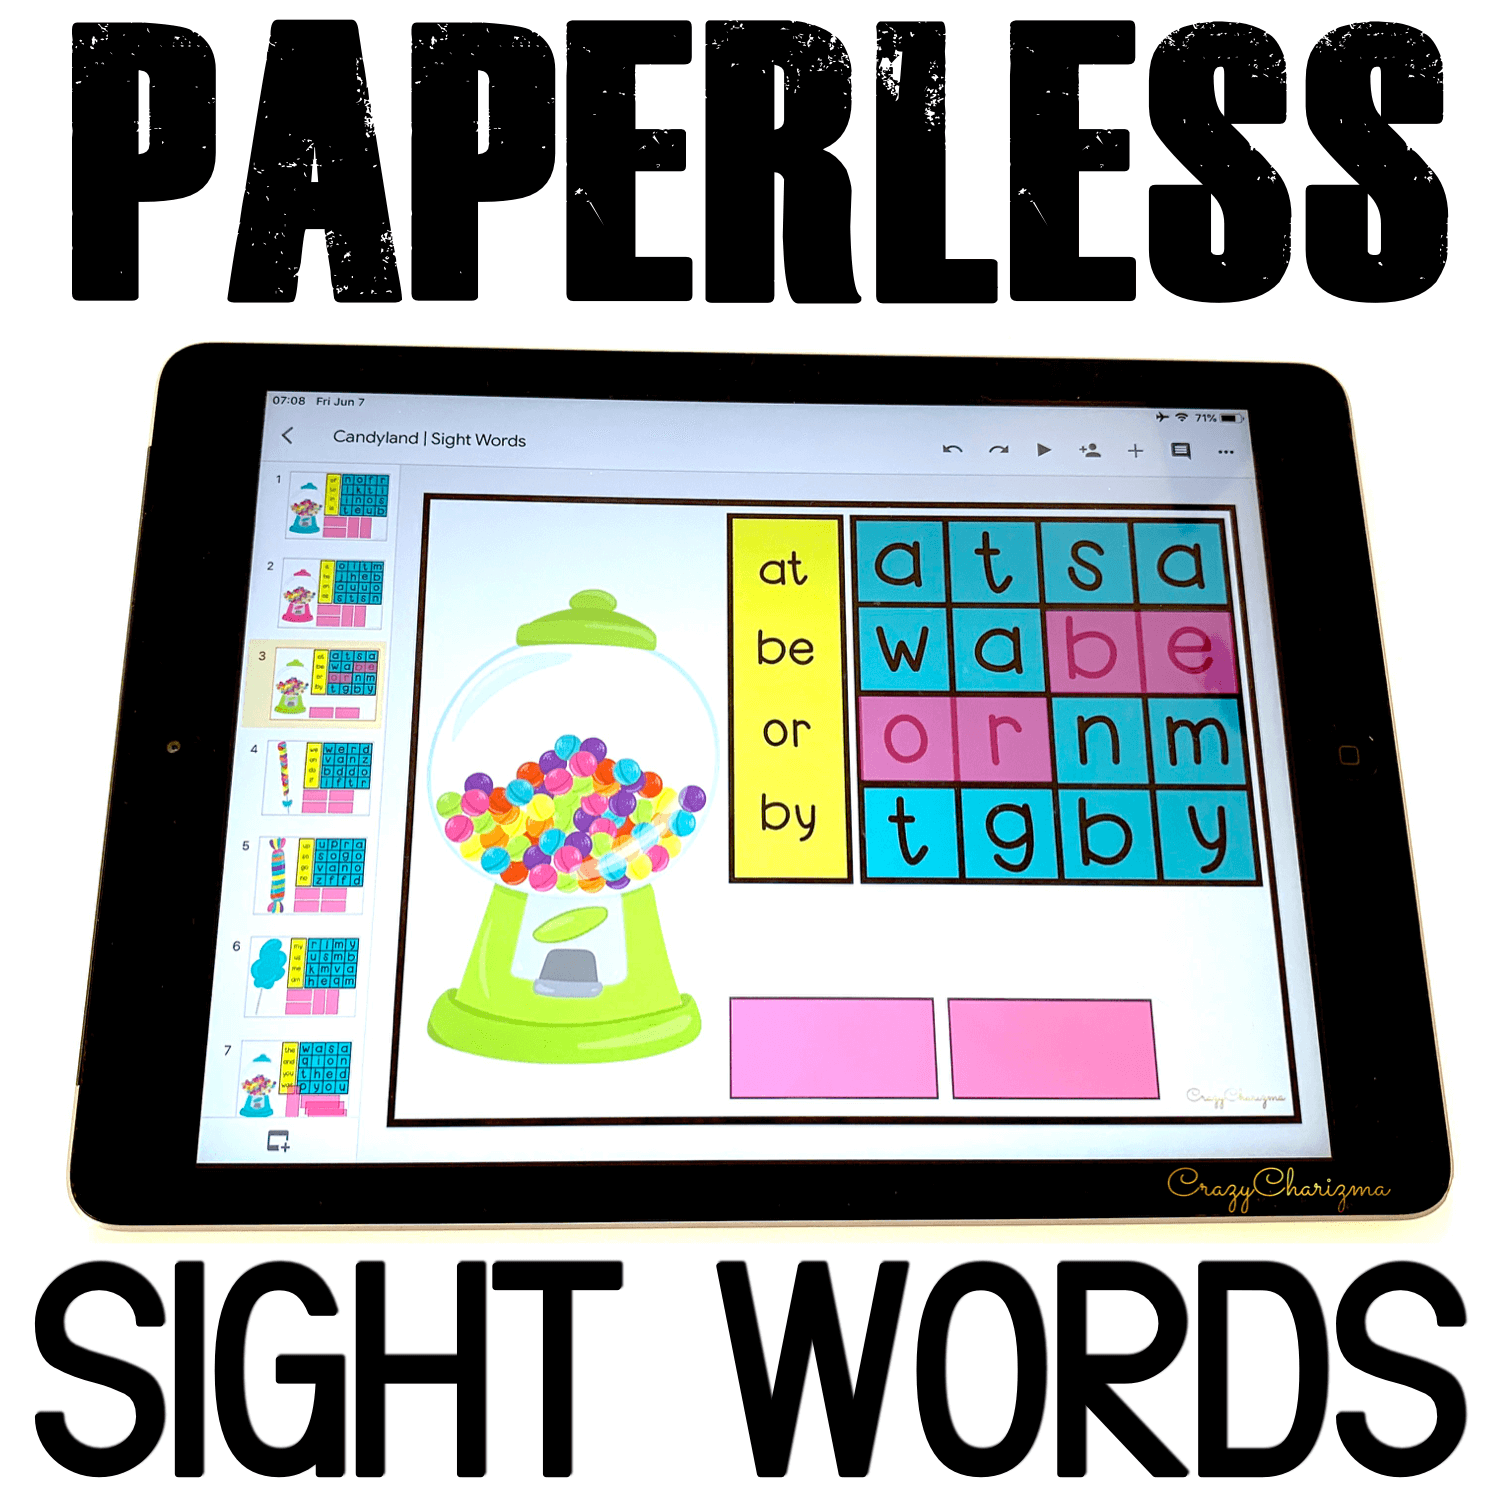 Google Classroom Activities for Kindergarten | Sight Words Games: Your students love word searches? Use them to teach sight words on iPads / Chromebooks / laptops. No print is required in Google Classroom!